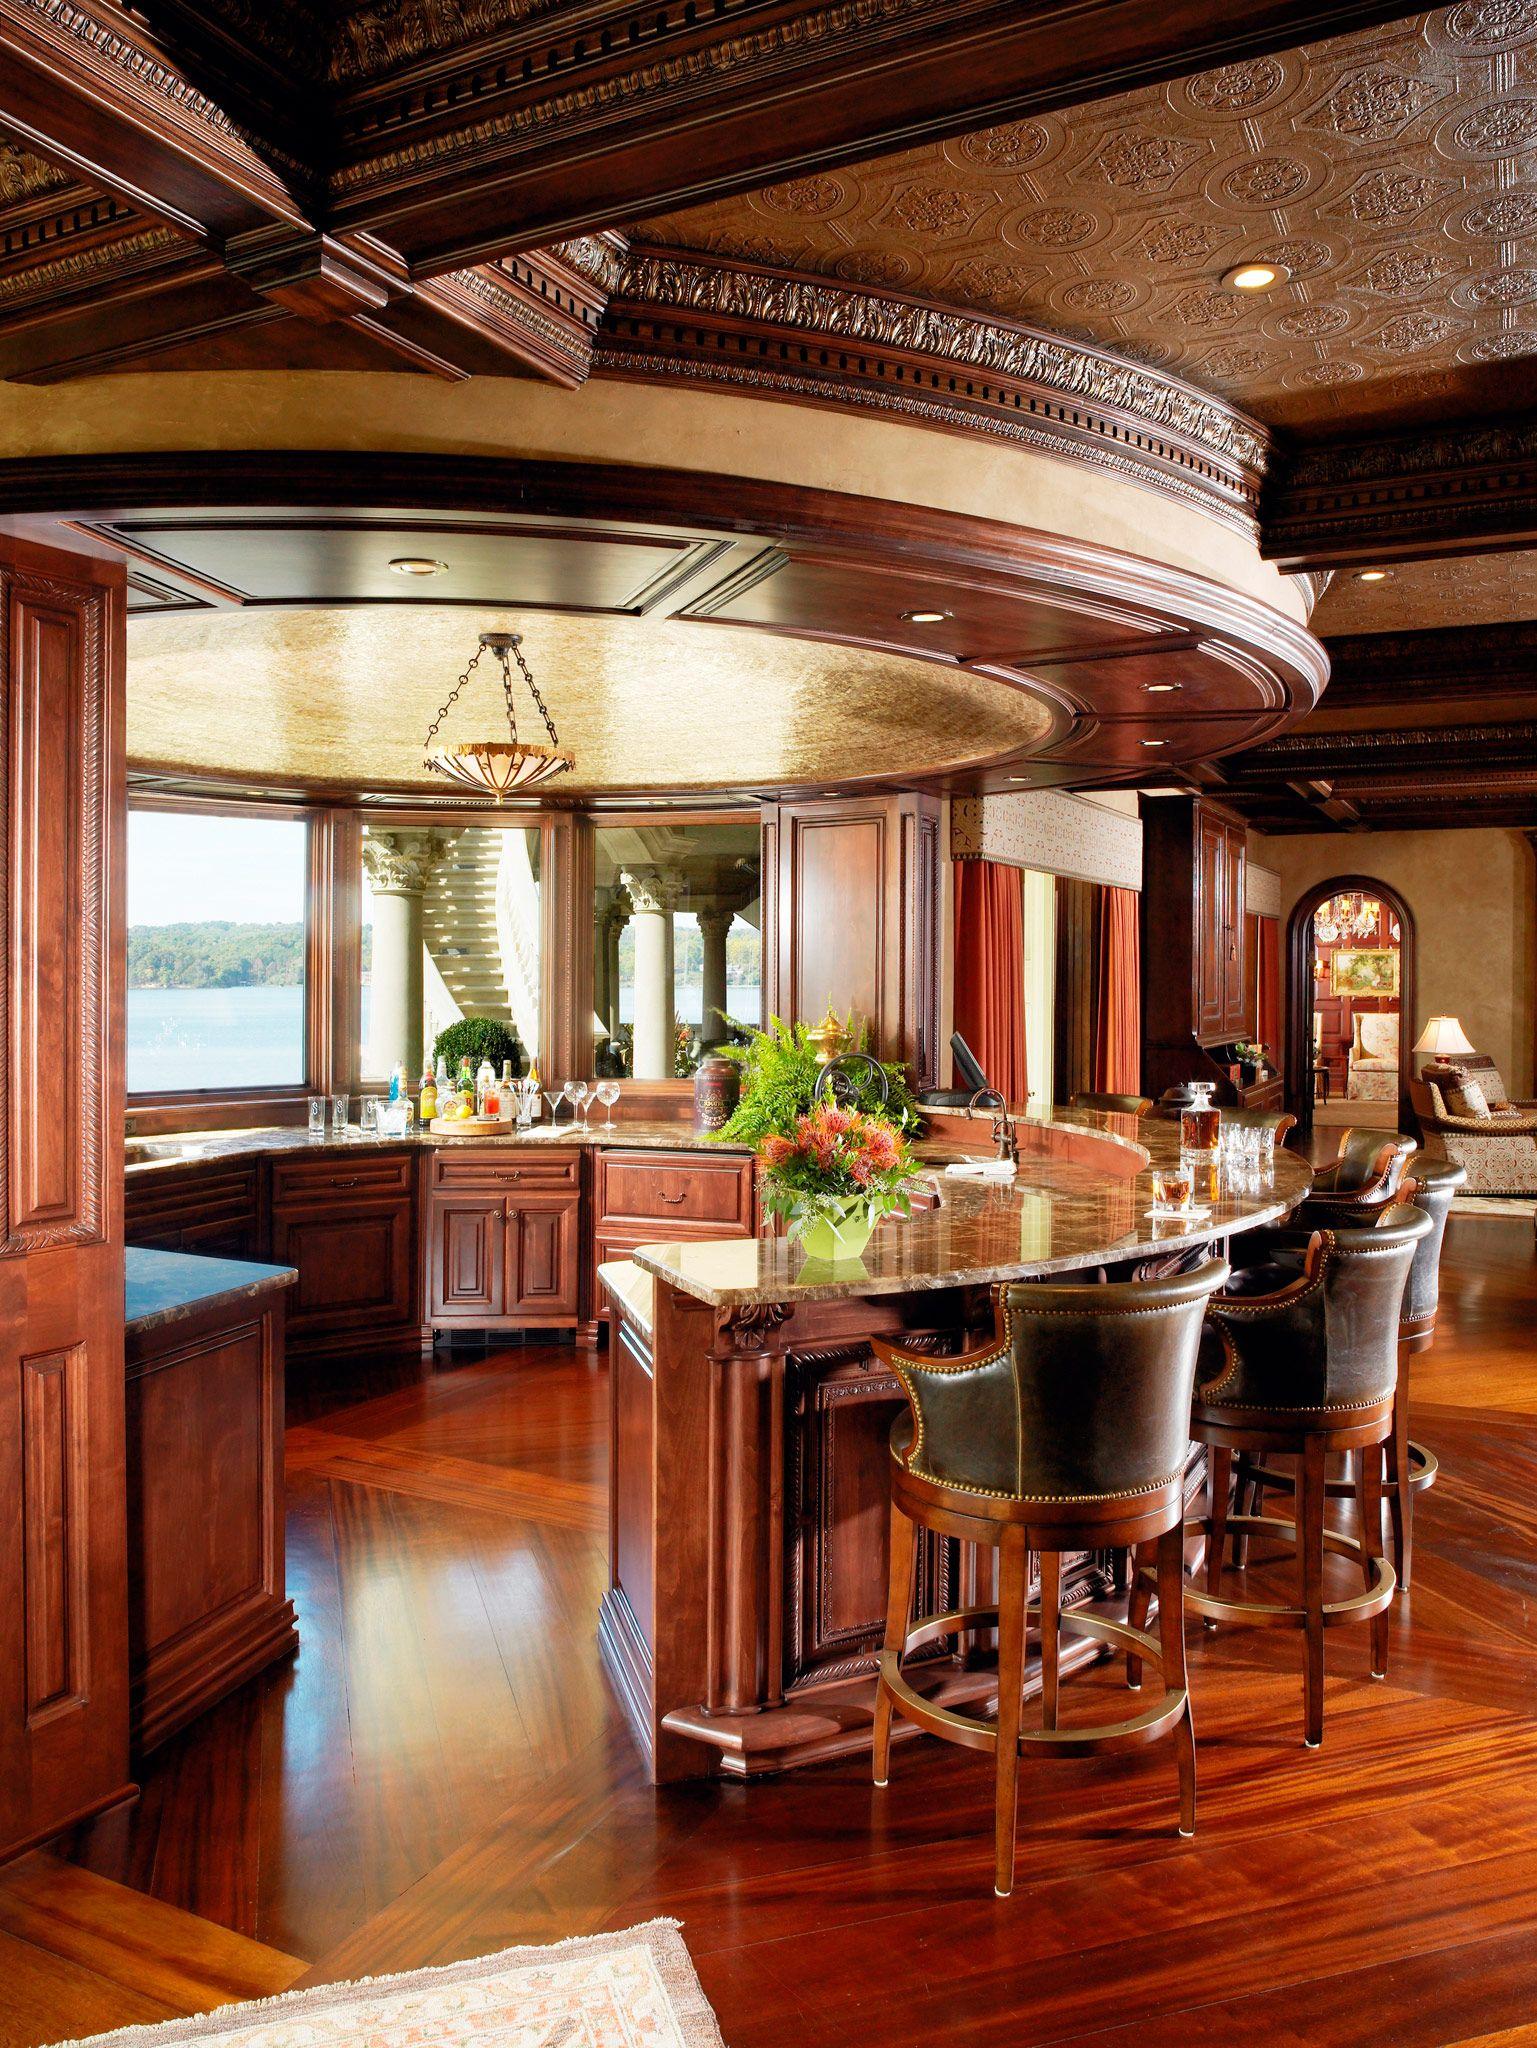 Kitchen Bar Design Pictures Luxury Today Page 3 Of 220 Luxury Lifestyle Home And Living